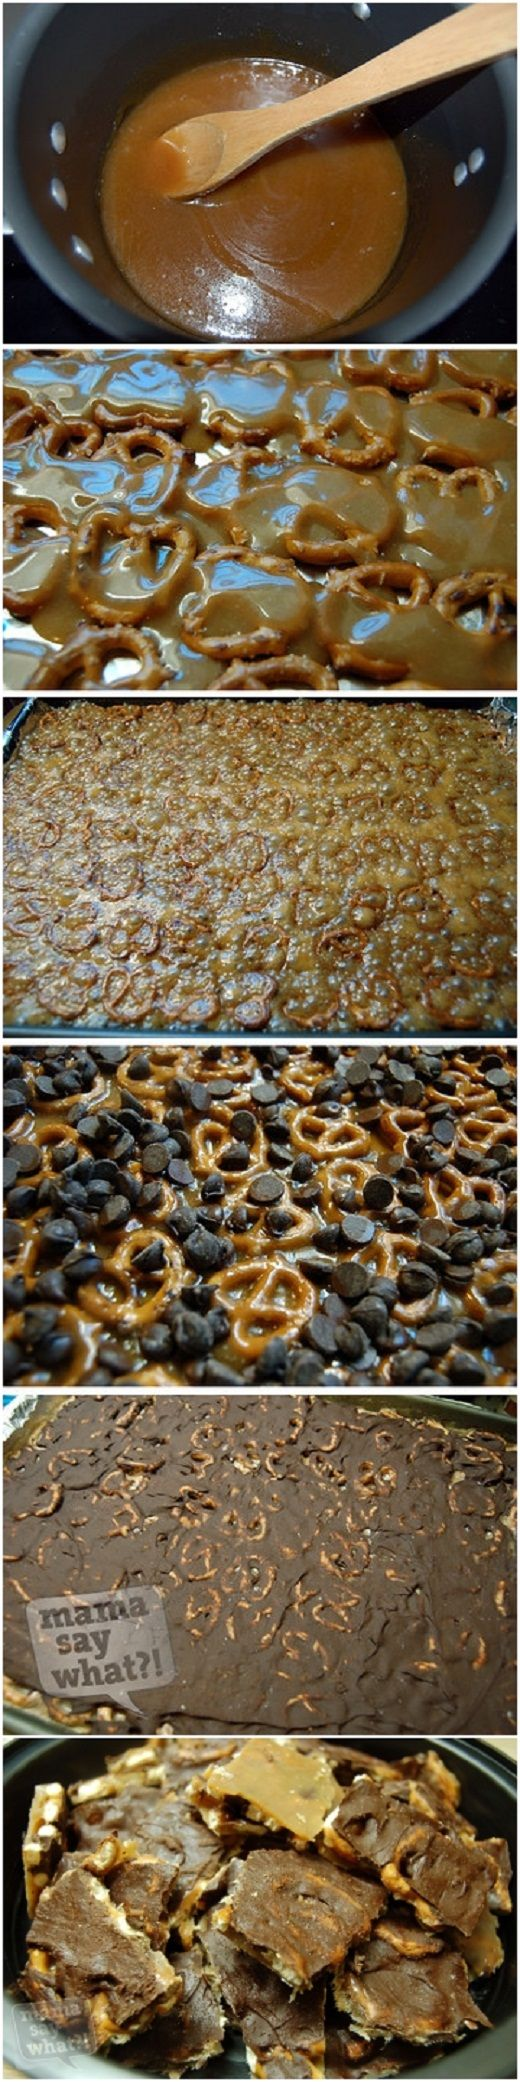 Salted Caramel Pretzel Bark...like chocolate covered, caramel filled pretzels YUM! (maybe skip the salt at the end)